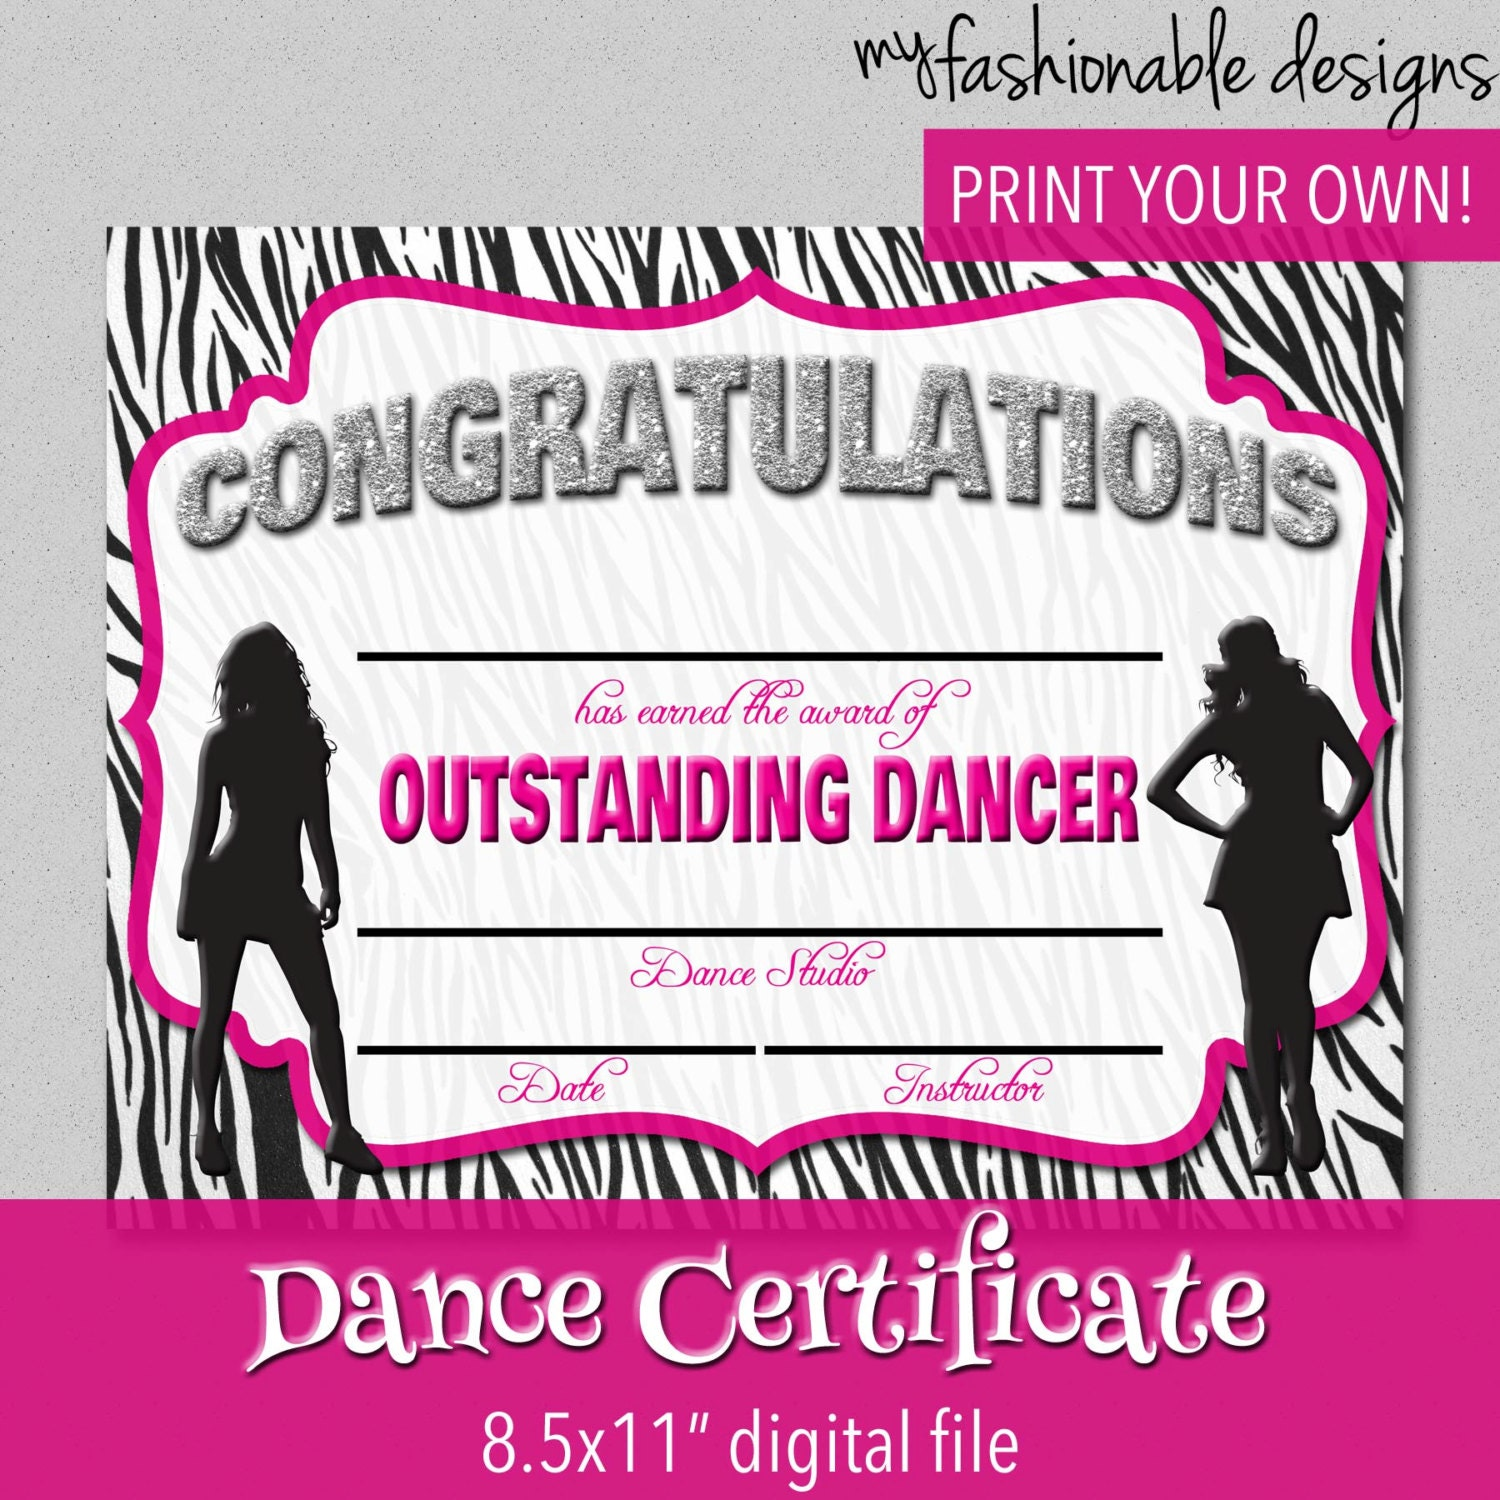 Dance Certificate Print Your Own Instant by